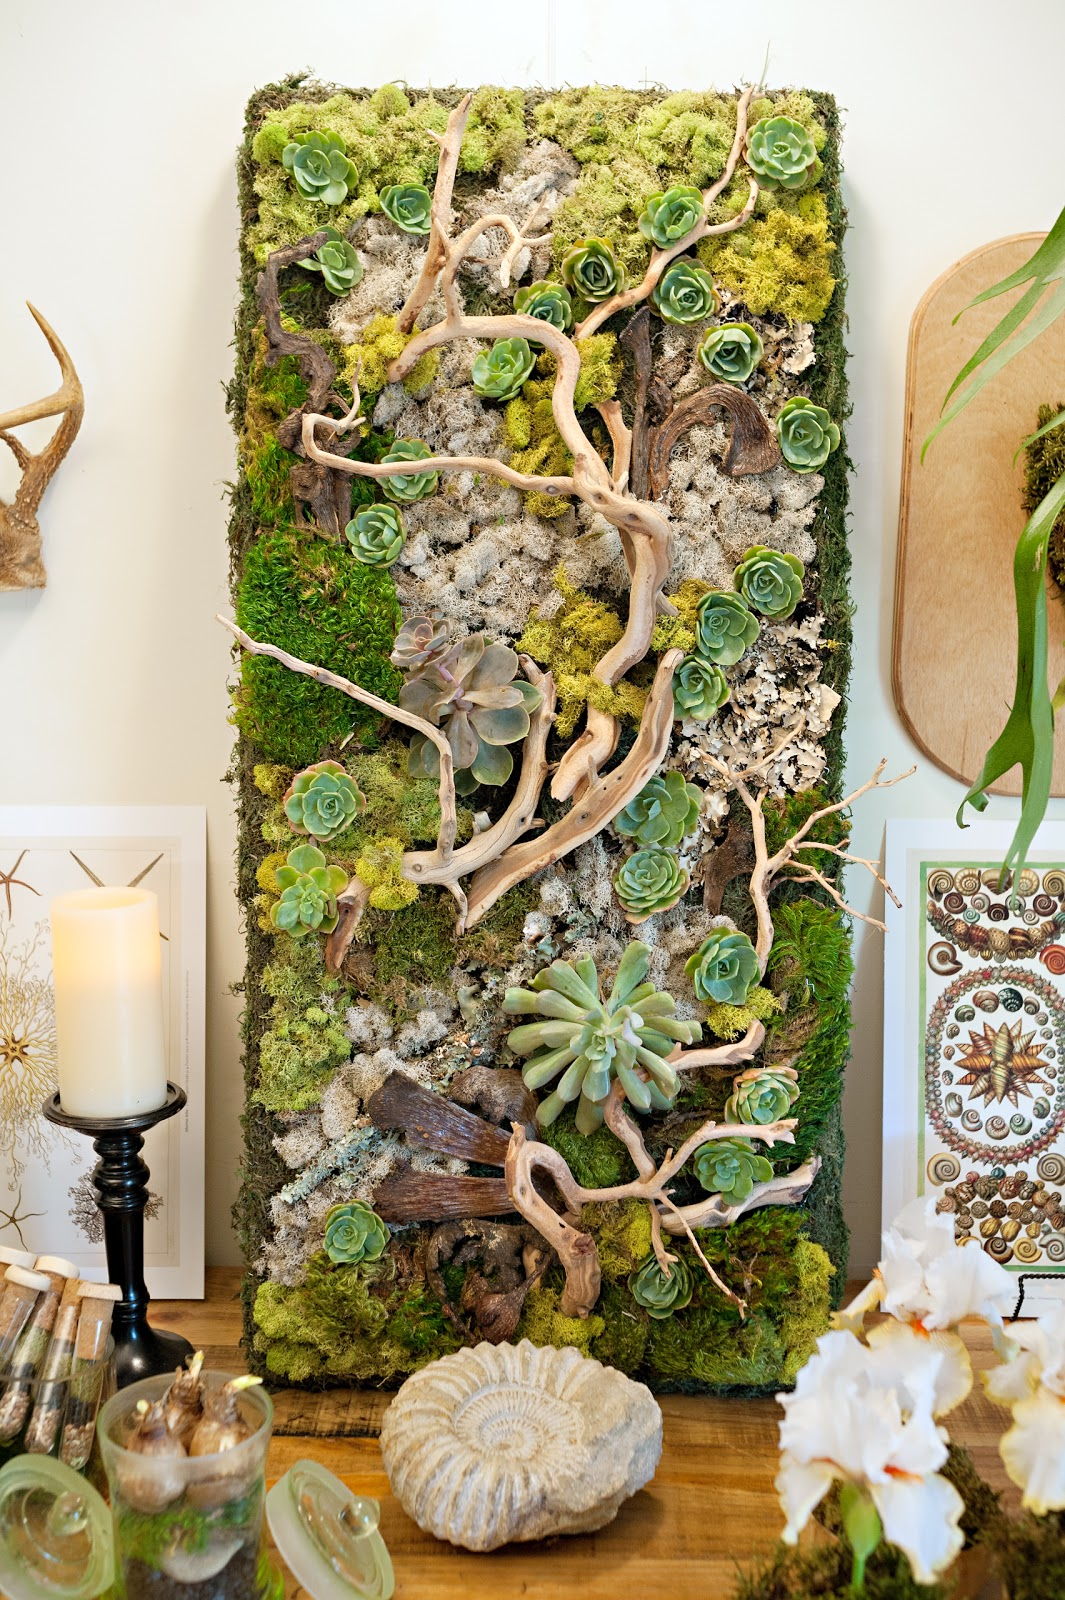 Garden Idea garden idea designrulz 4 10 Embellished Wall Panel Showcases Succulents And Driftwood